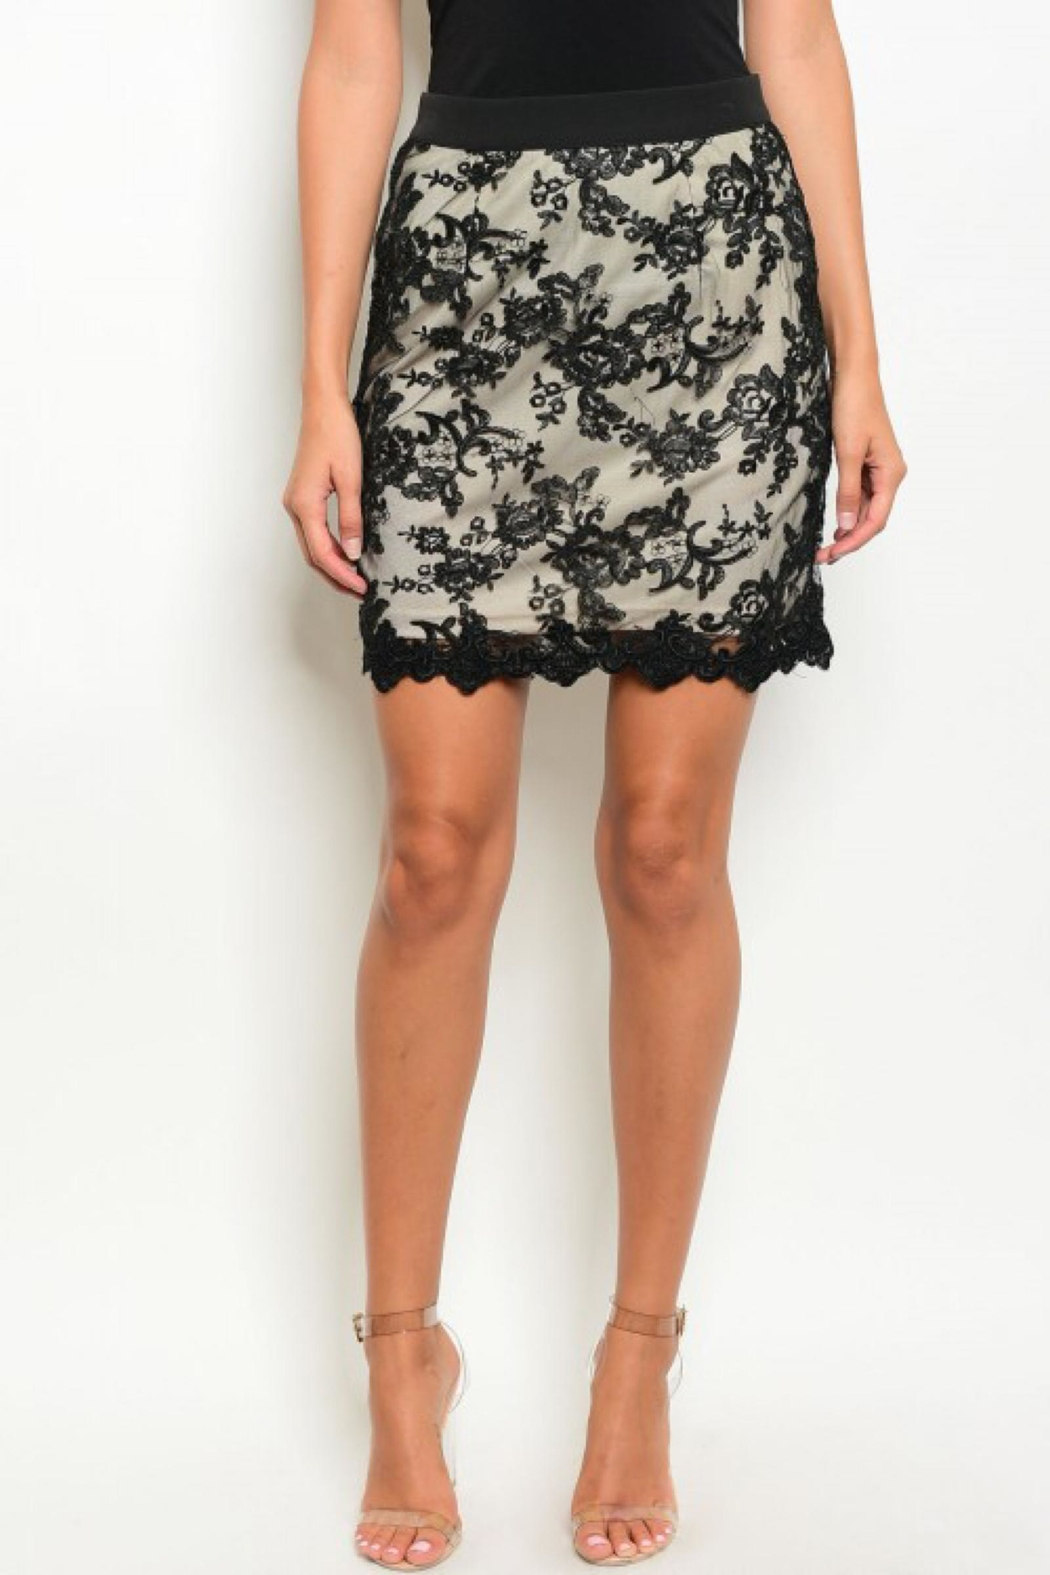 People Outfitter Black Lace Skirt - Front Full Image